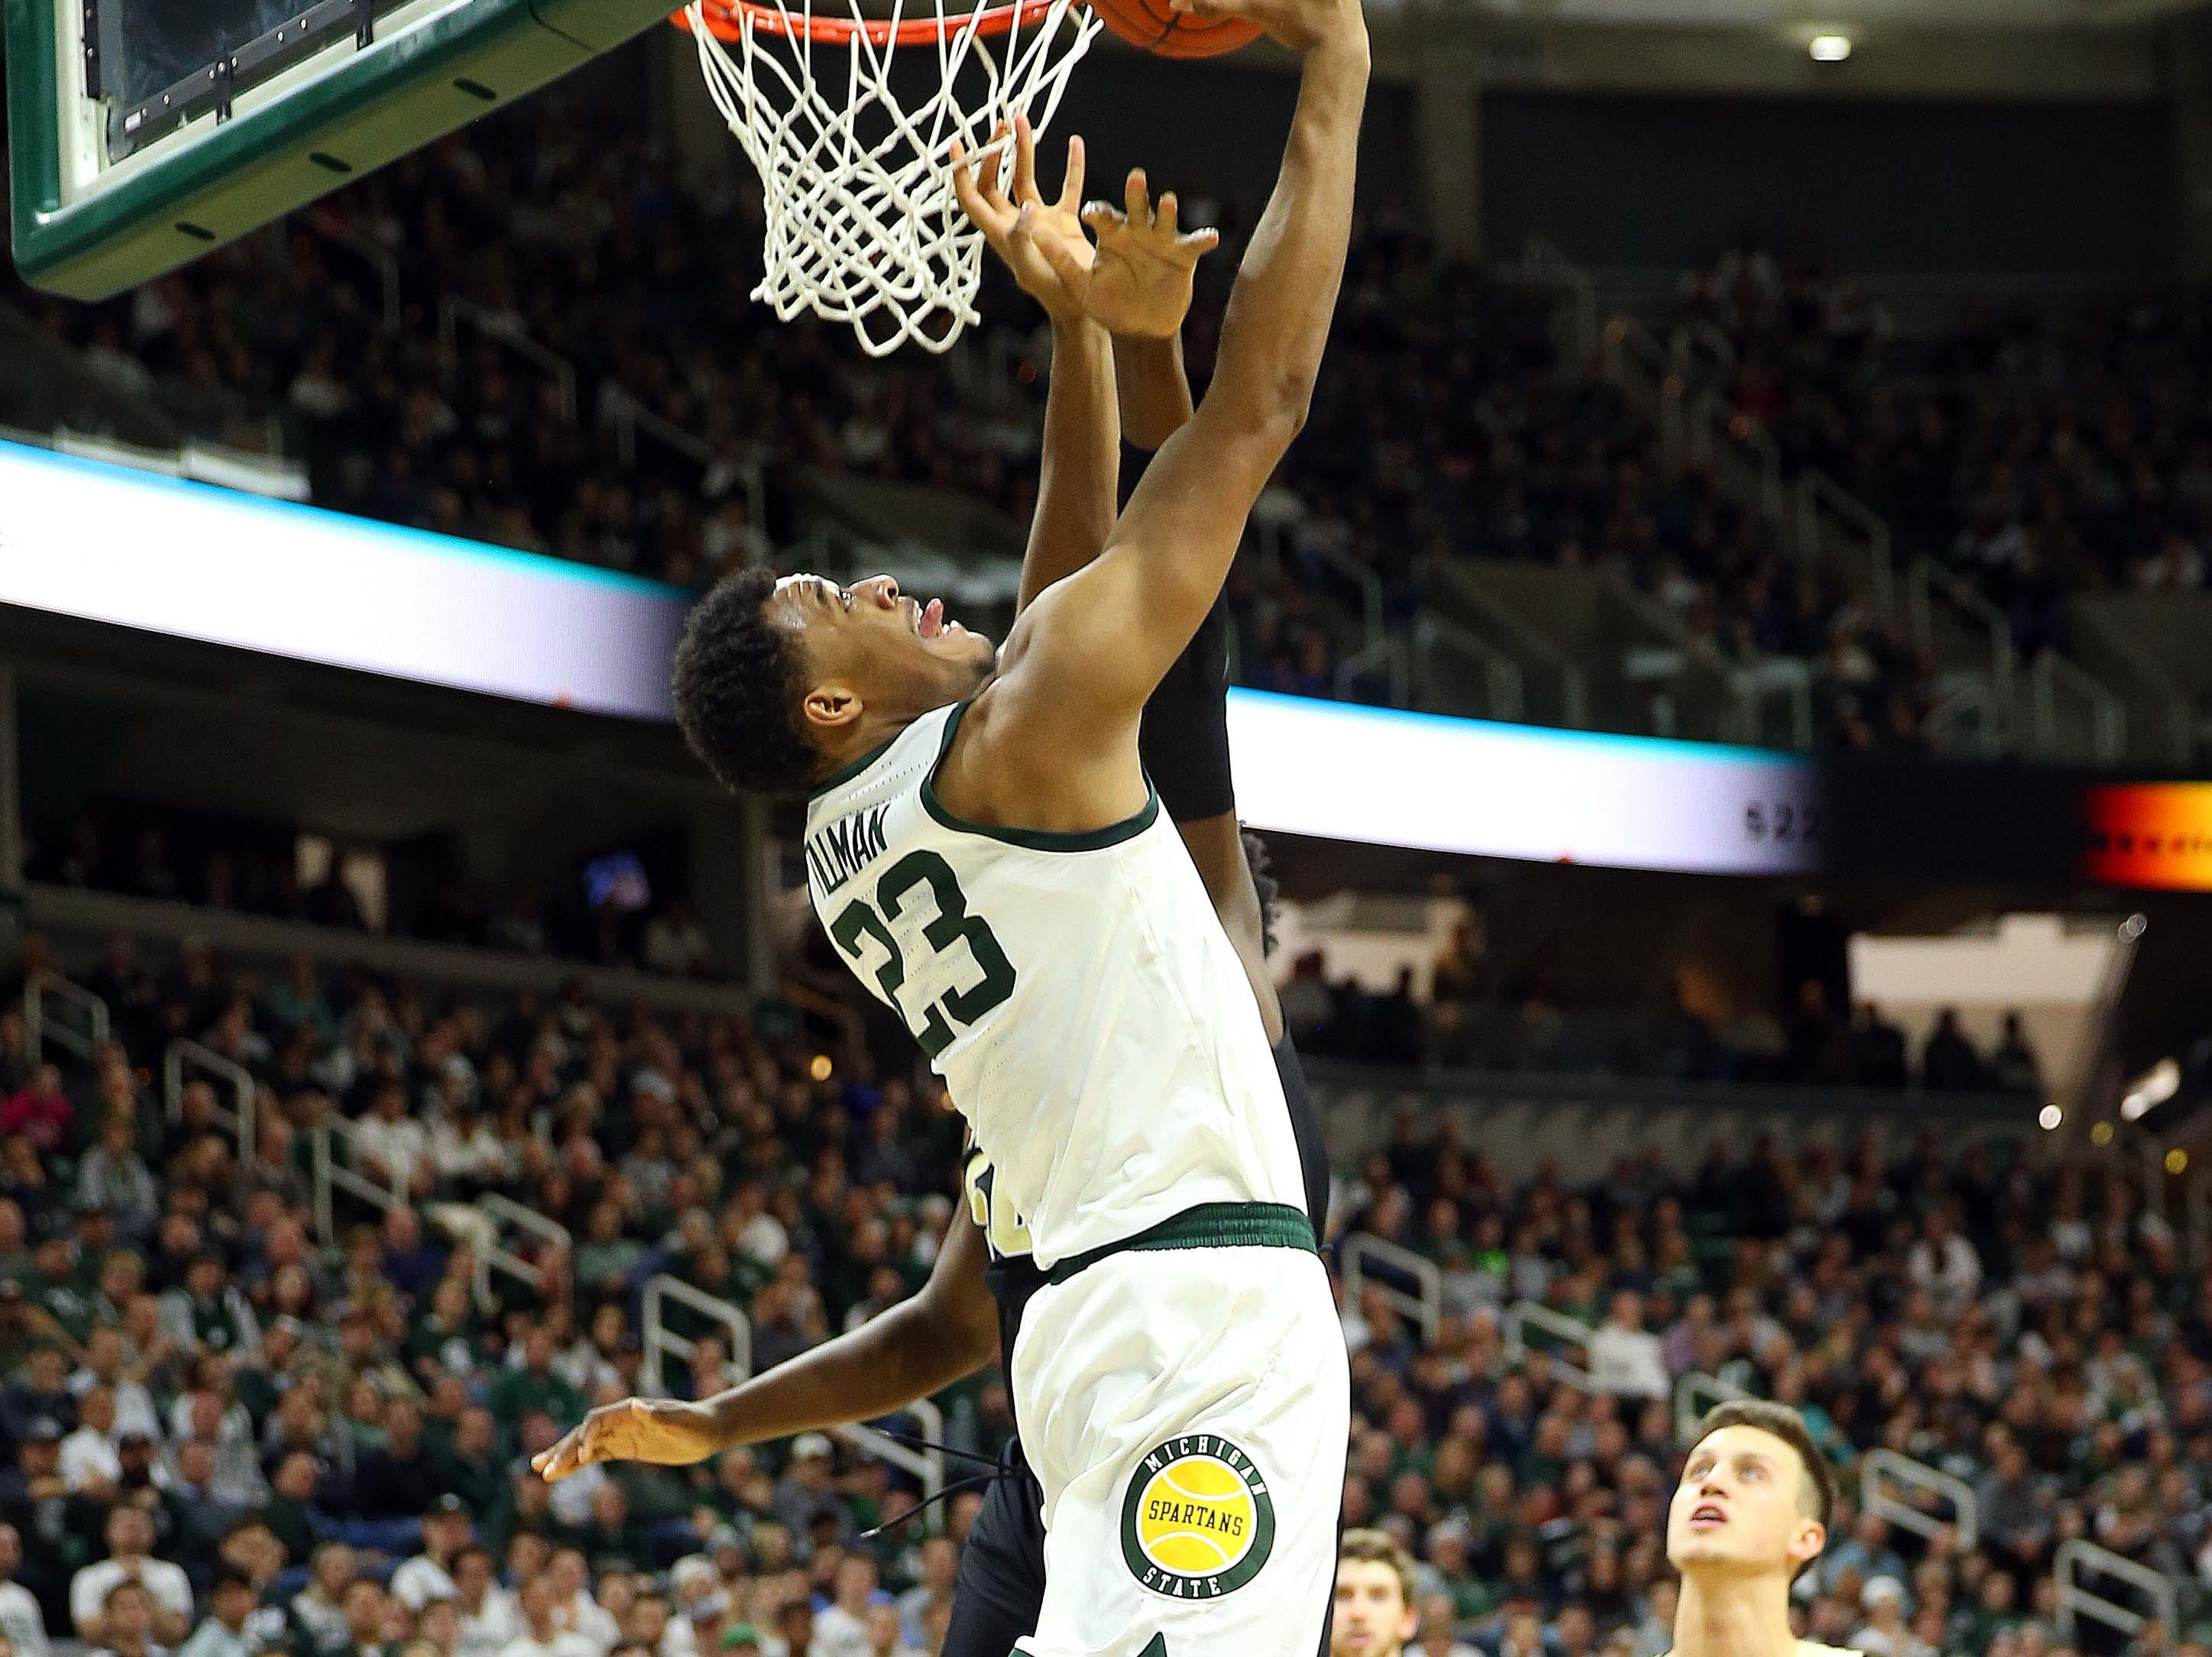 Jan 8, 2019; East Lansing, MI, USA; Michigan State Spartans forward Xavier Tillman (23) lays the ball up against the Purdue Boilermakers during the first half of a game at the Breslin Center. Mandatory Credit: Mike Carter-USA TODAY Sports